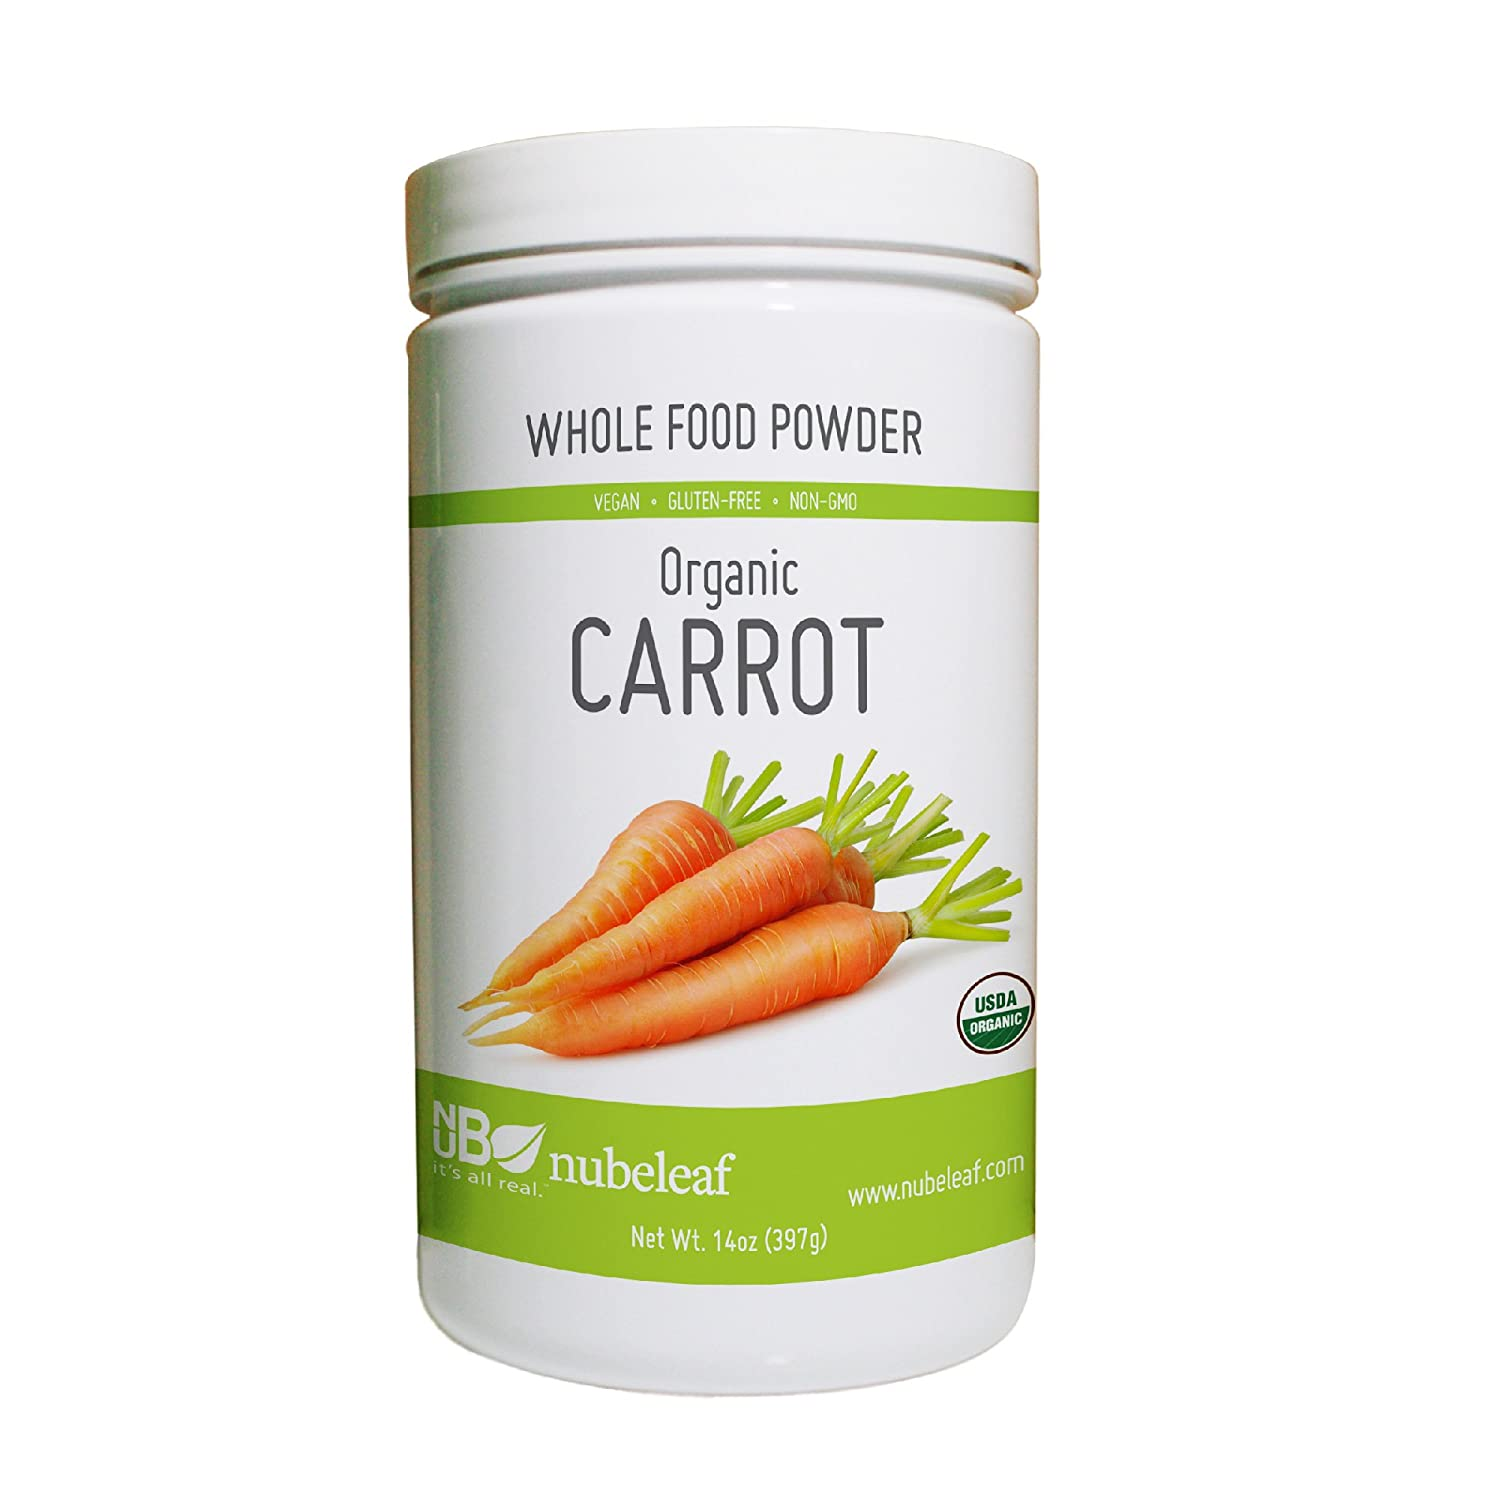 Nubeleaf Carrot Powder - Non-GMO, Gluten-Free, Raw, Organic, Vegan Source of Essential Vitamins & Minerals - Single-Ingredient Nutrient Rich Superfood for Cooking, Baking, Smoothies (14oz)